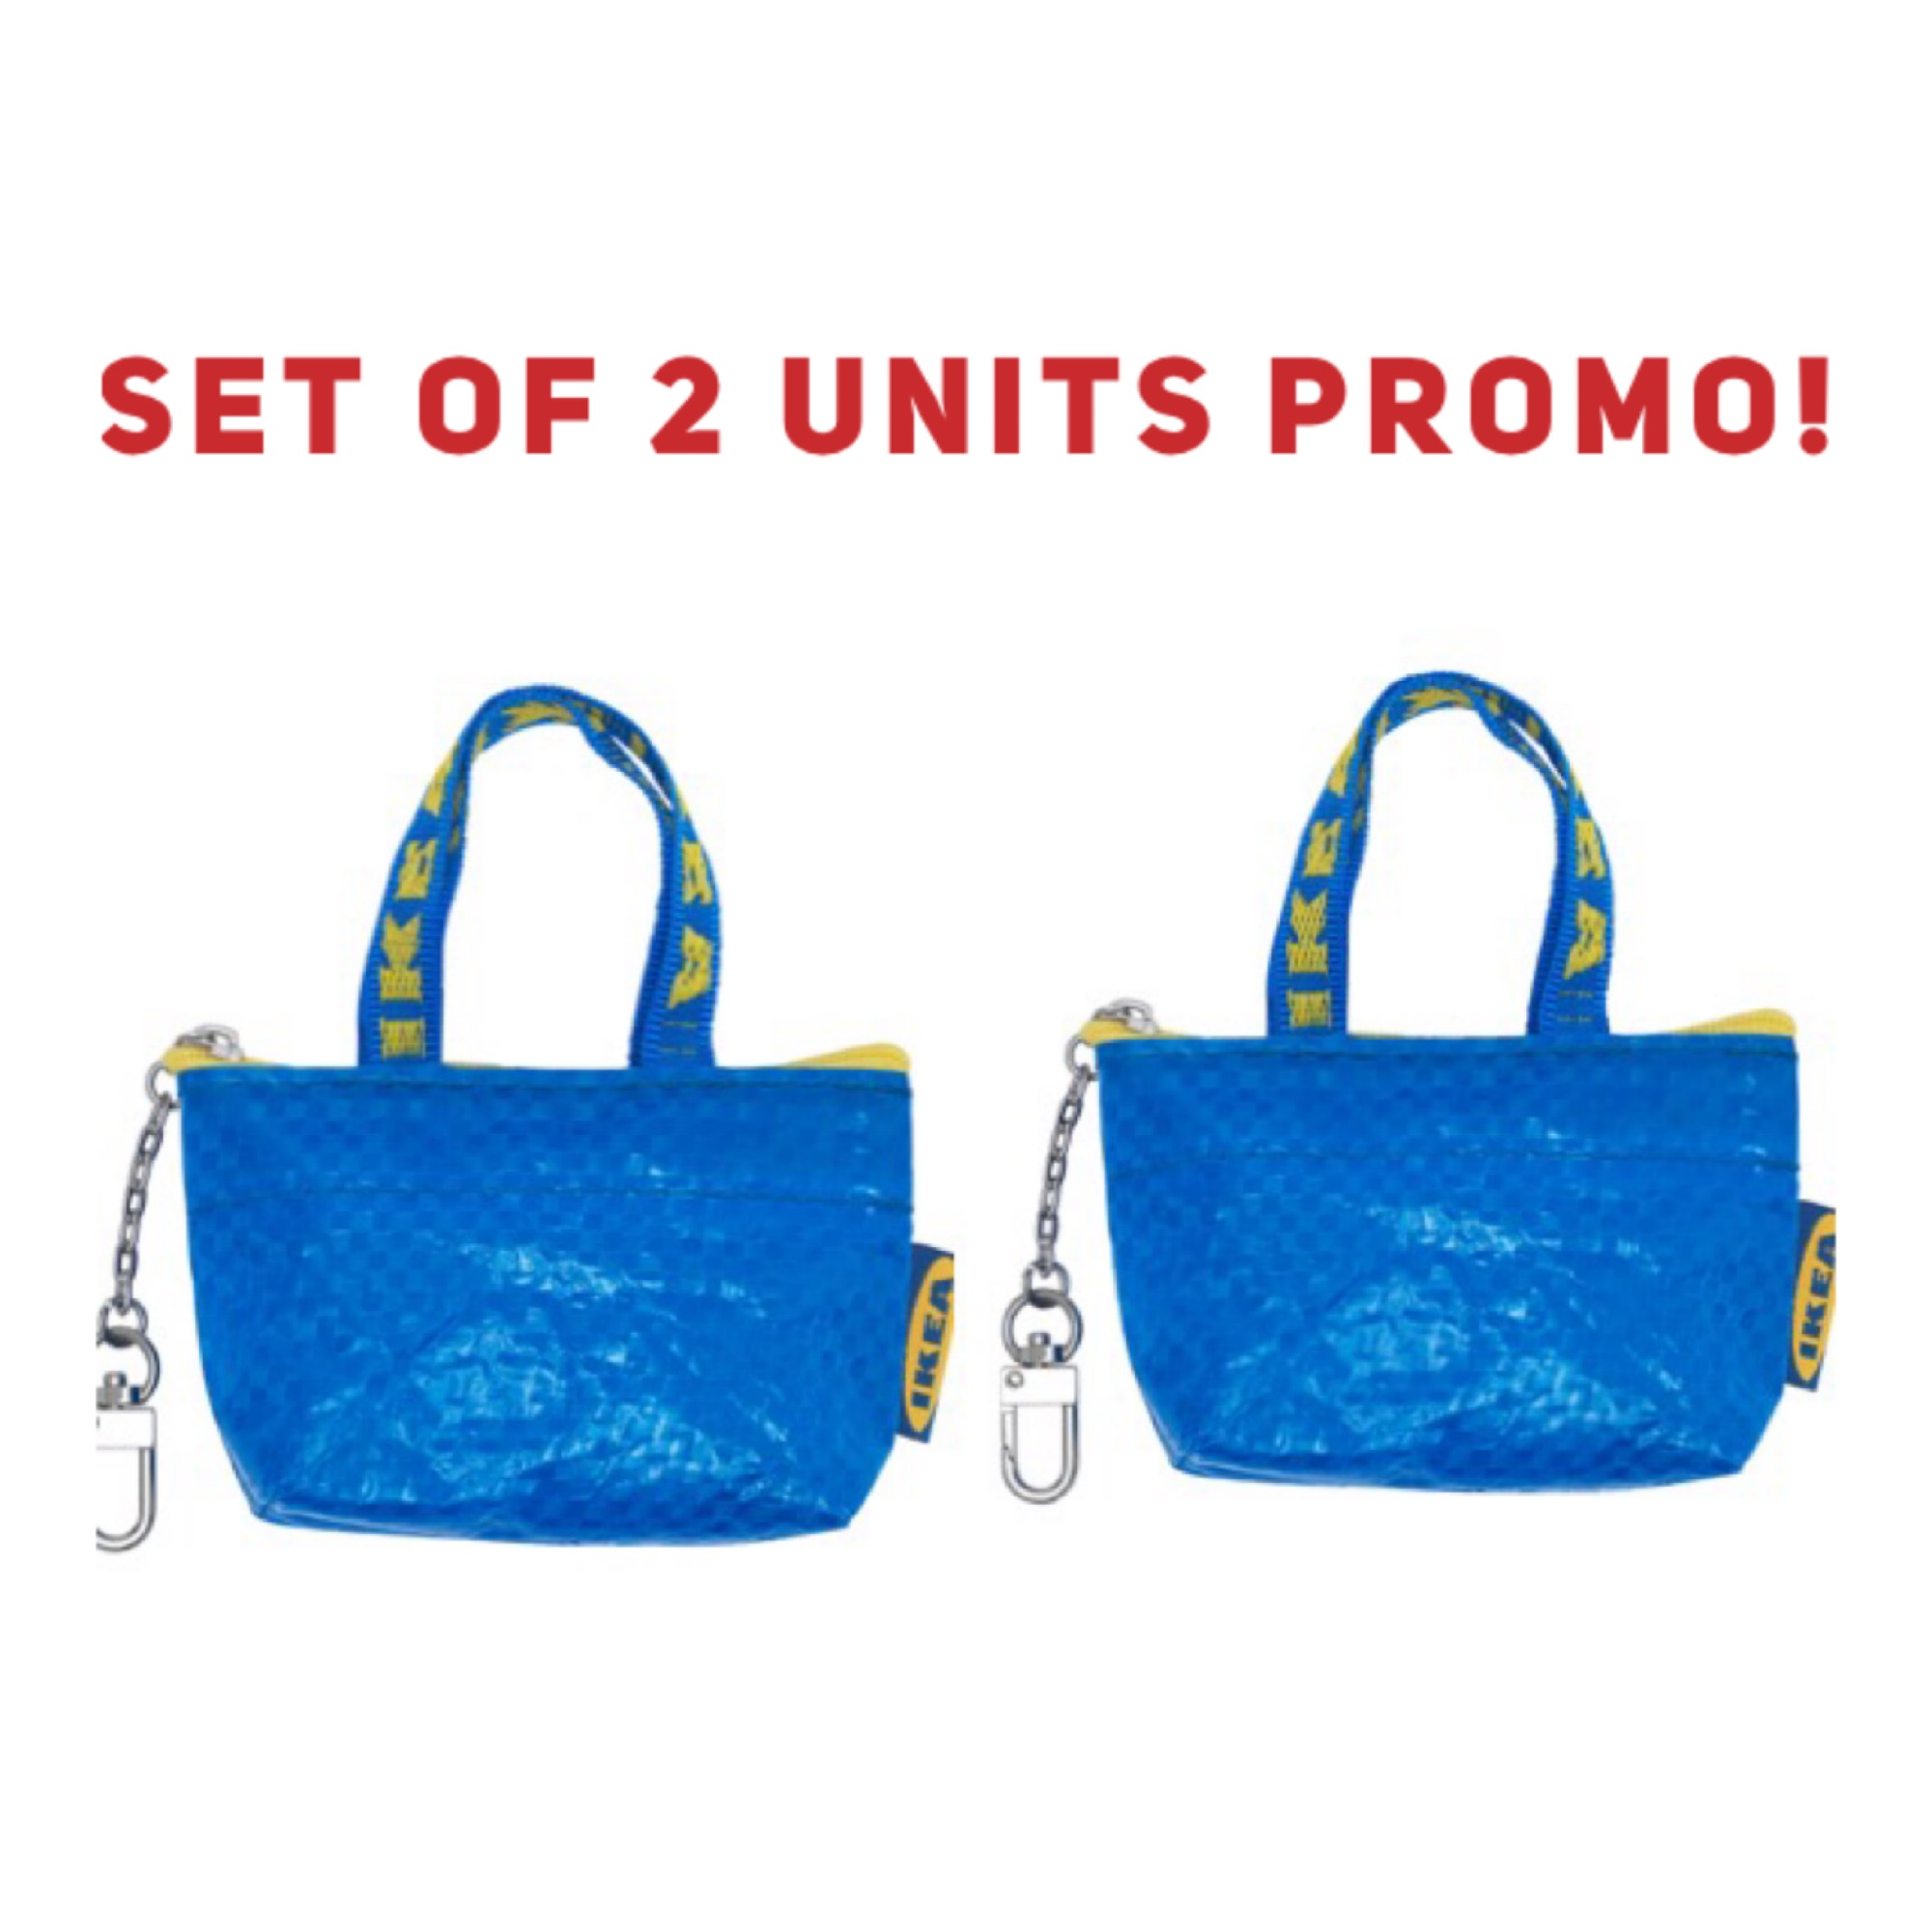 IKEA mini tote Knolig bag keychain Promo Set of 2